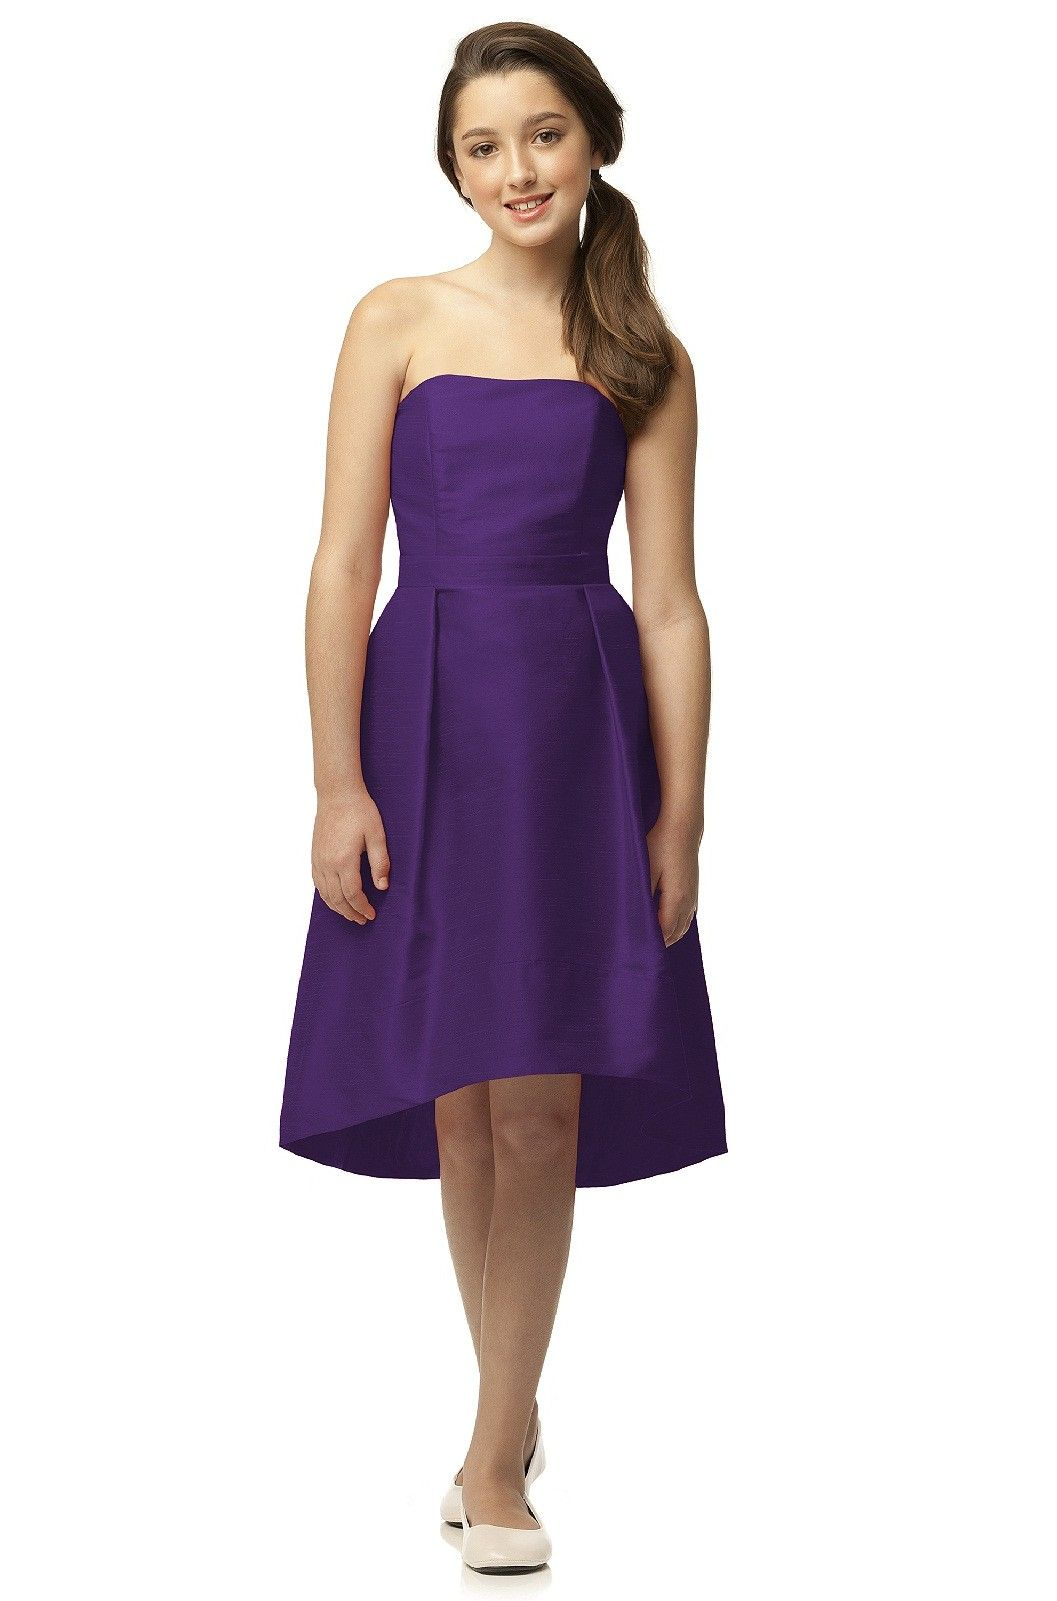 Shop dessy junior bridesmaid dress jr516 in peau de soie at find the perfect made to order bridesmaid dresses for your bridal party in your favorite color style and fabric at weddington ombrellifo Image collections